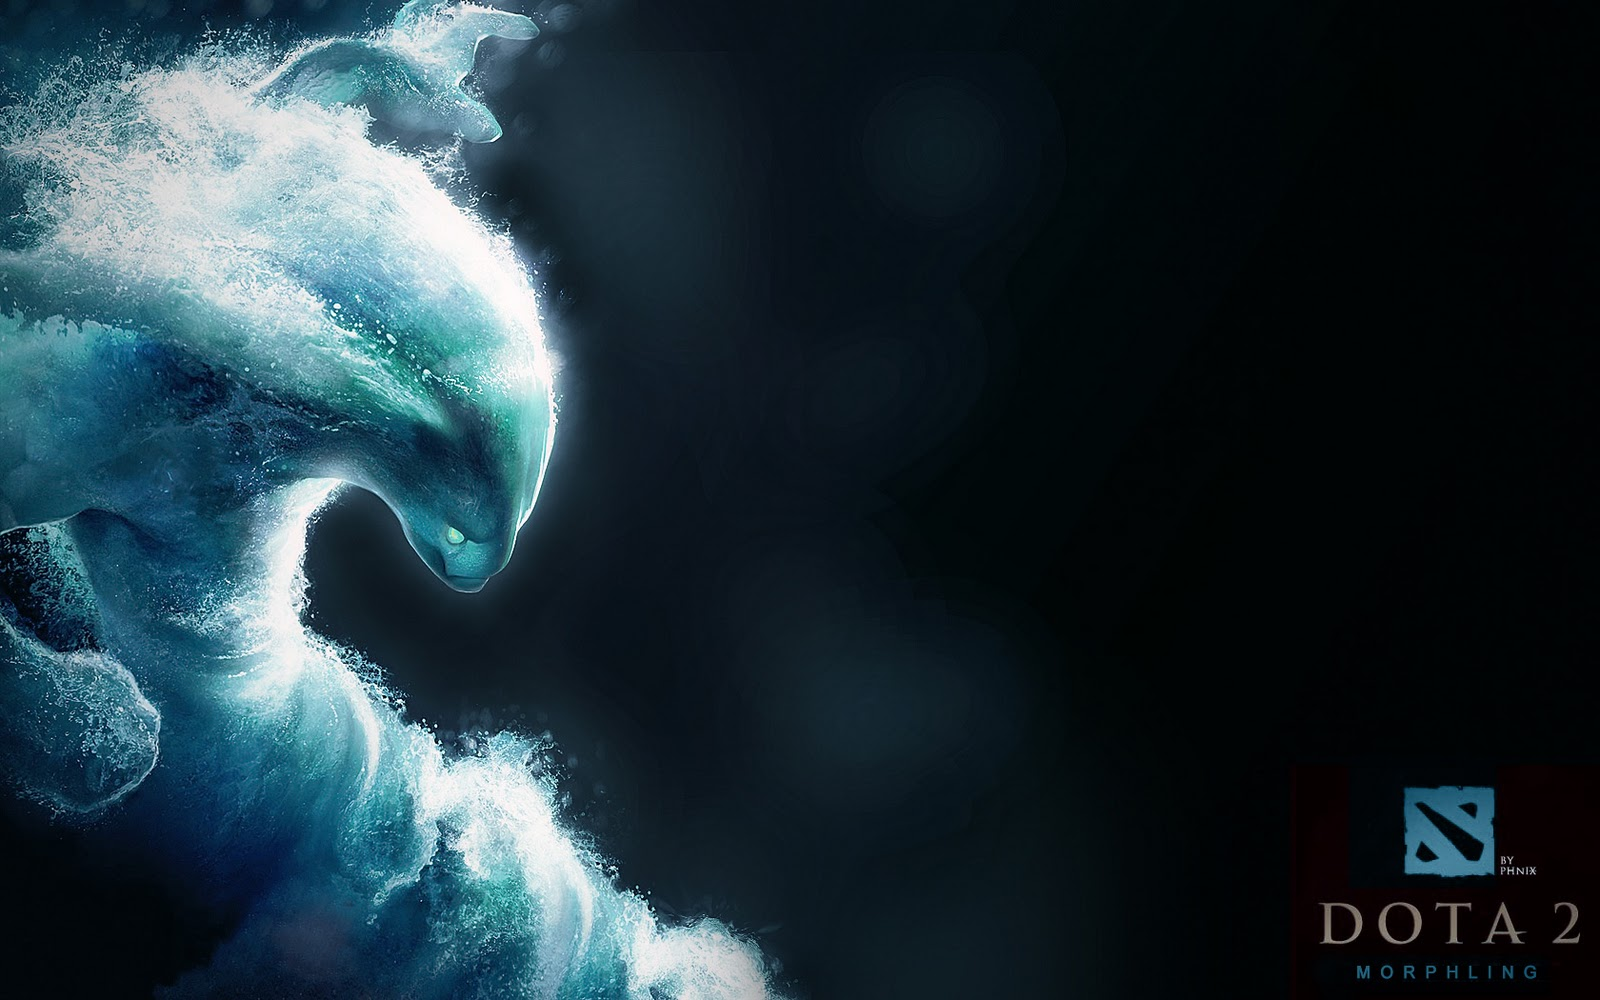 dota 2 wallpapers dota 2 wallpaper 1680x1050 by phnix